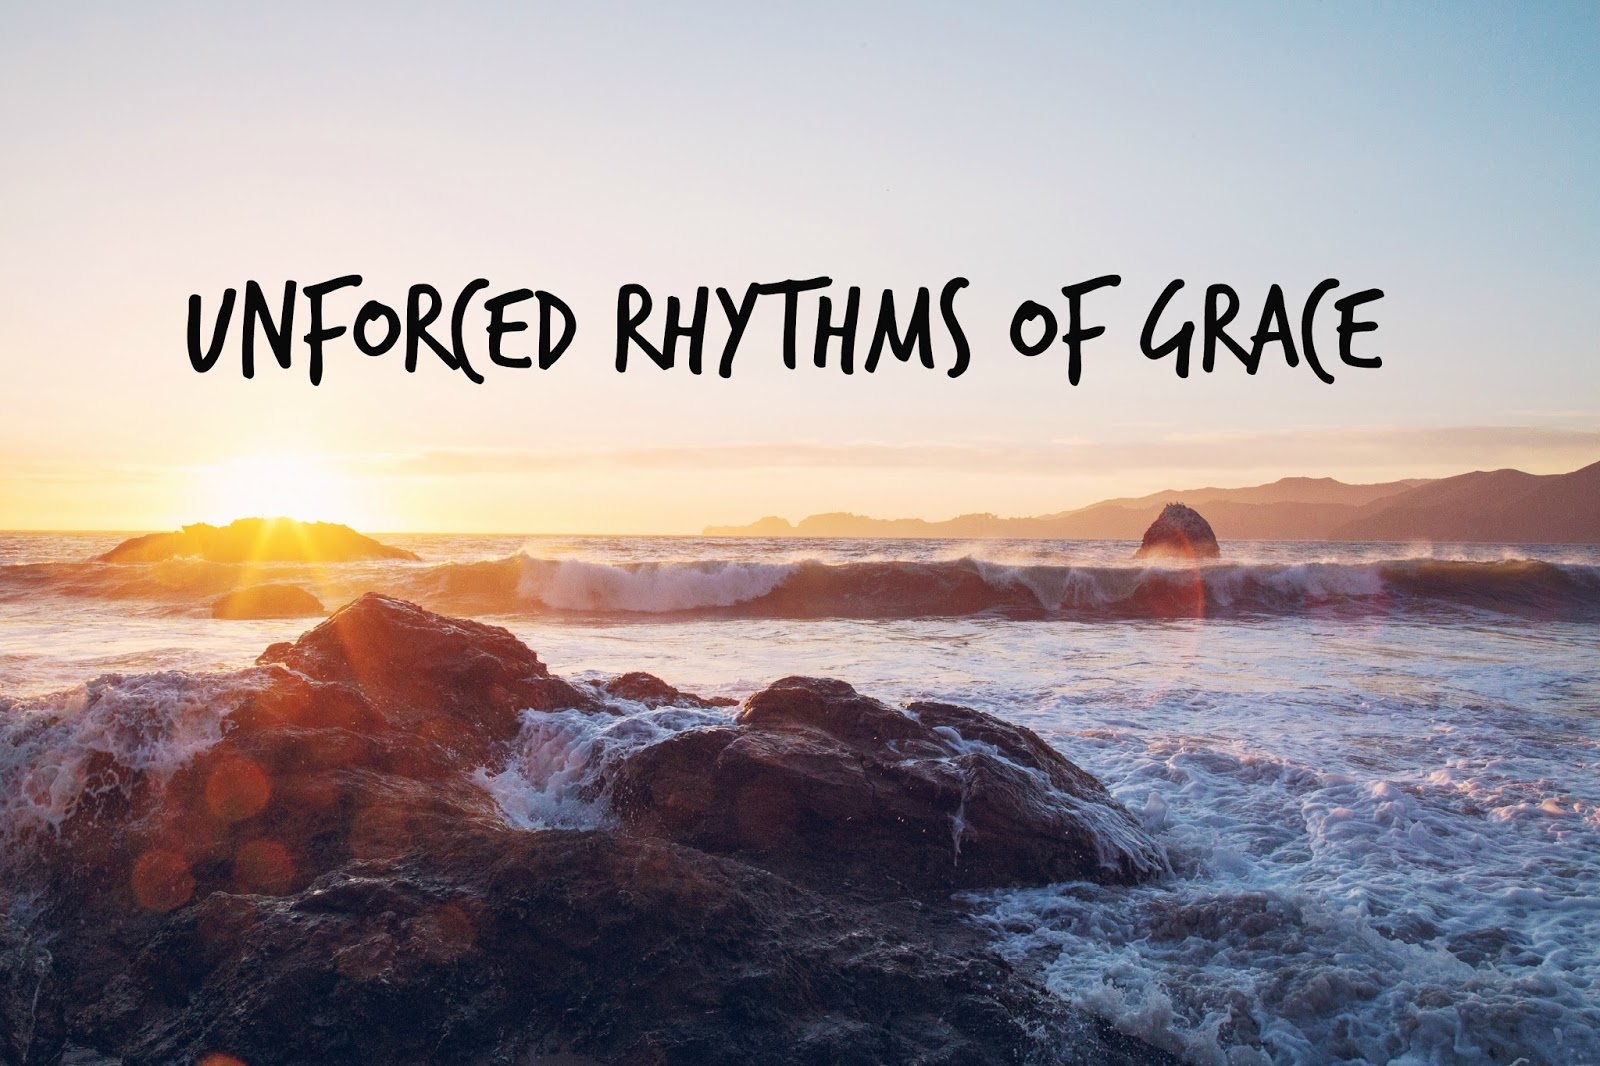 Rhythms of Grace - Candice Elaine